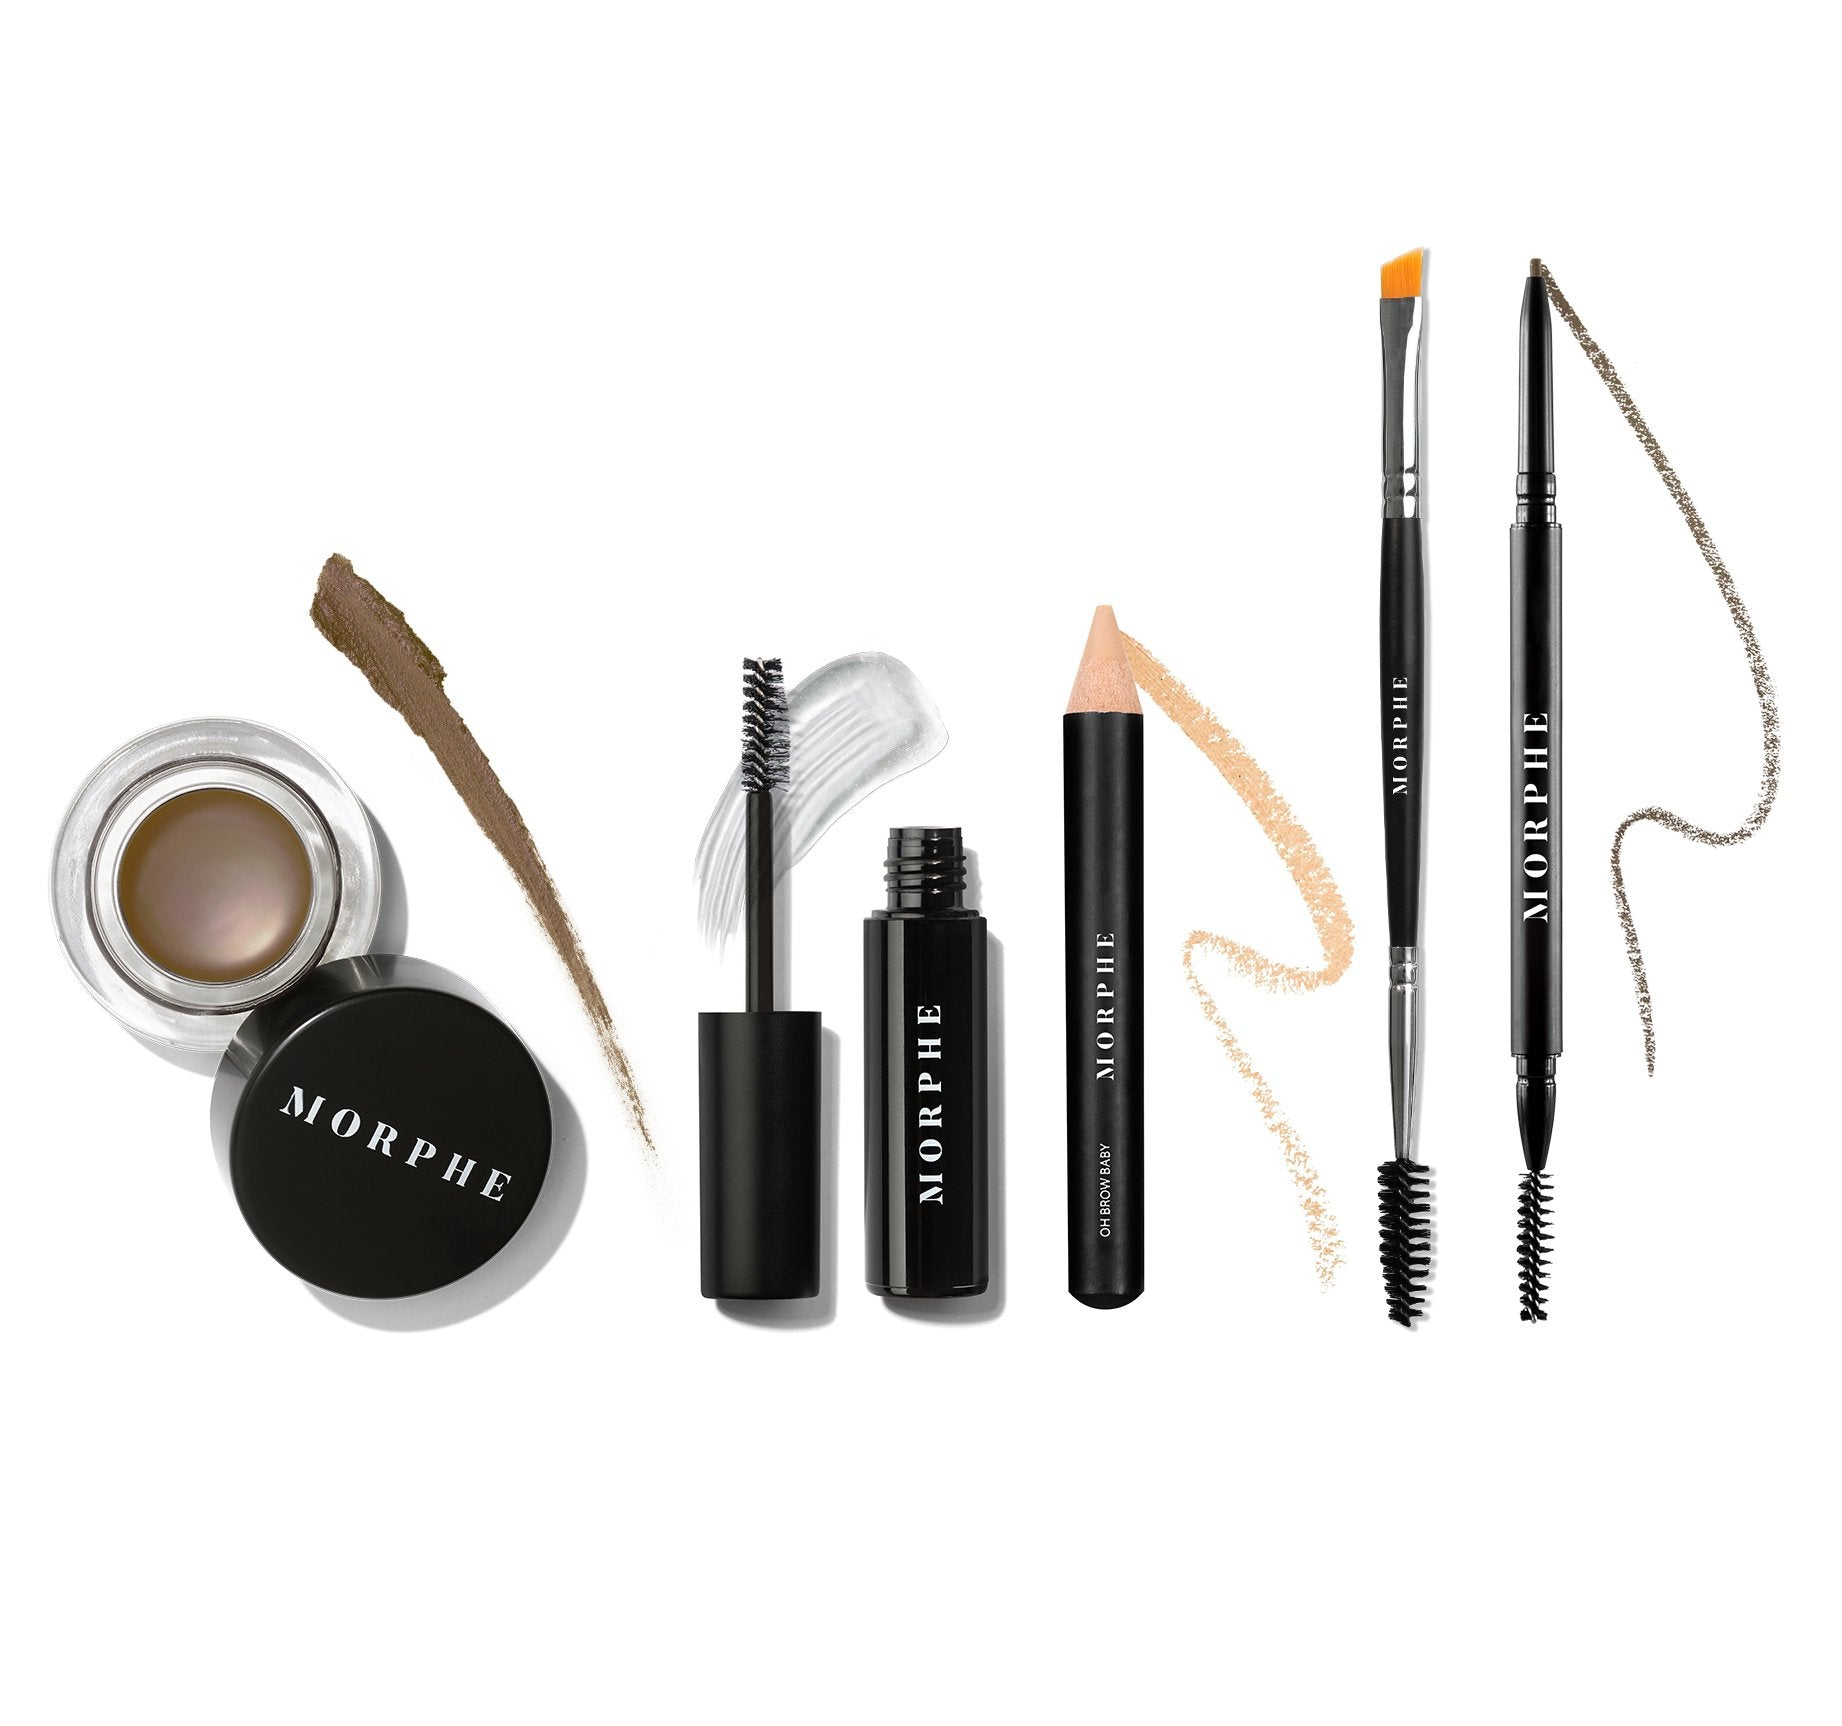 Arch Obsessions Brow Kit Biscotti Morphe Us